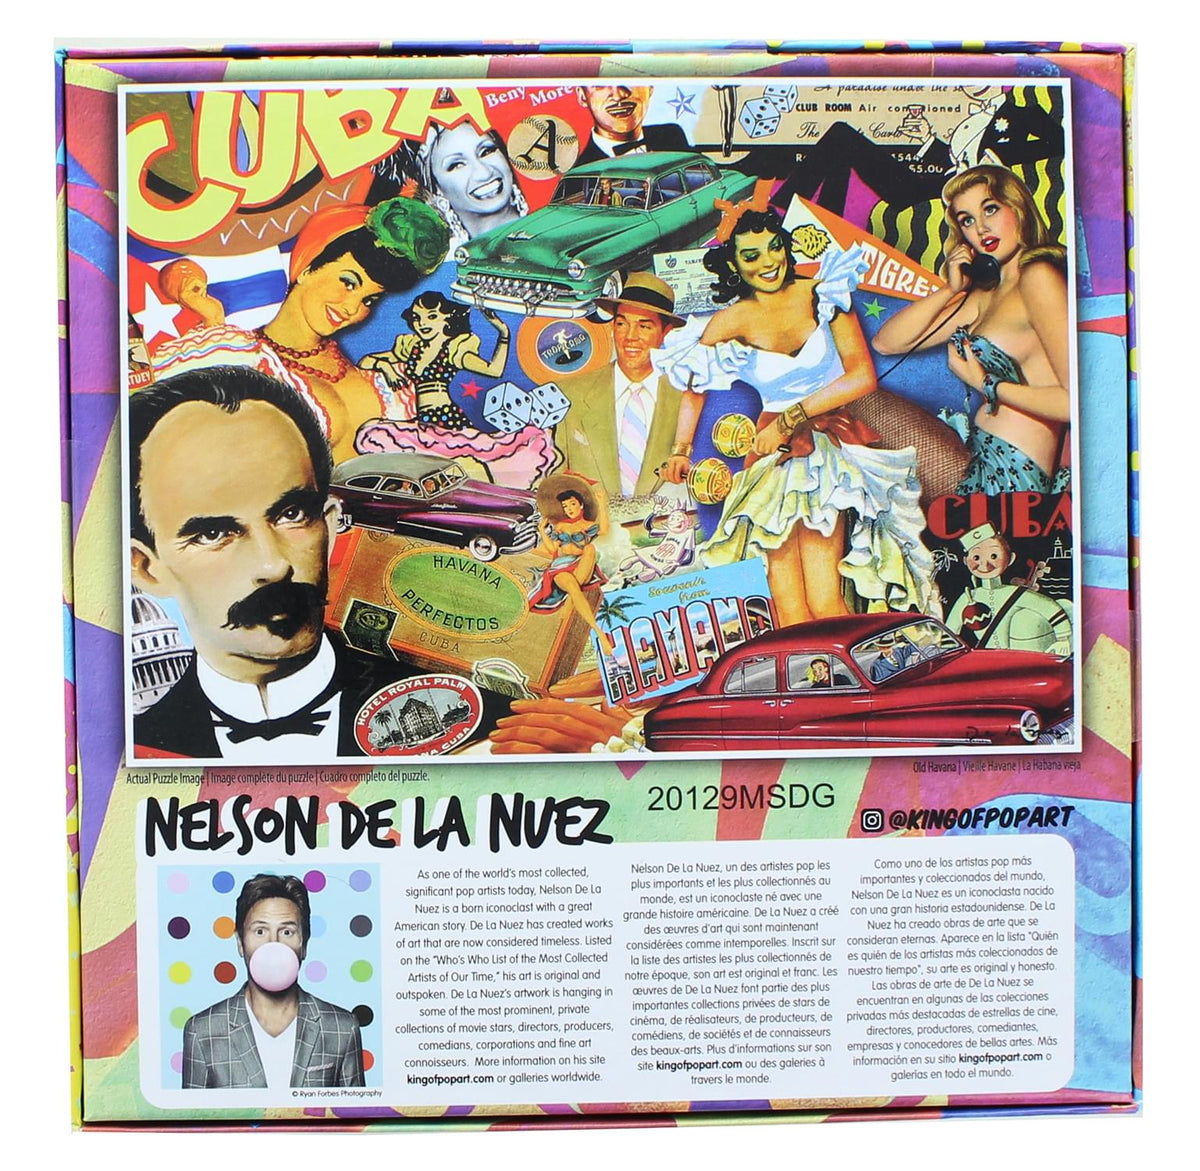 Nelson De La Nuez King Of Pop Art 1000 Piece Jigsaw Puzzle | Old Havana